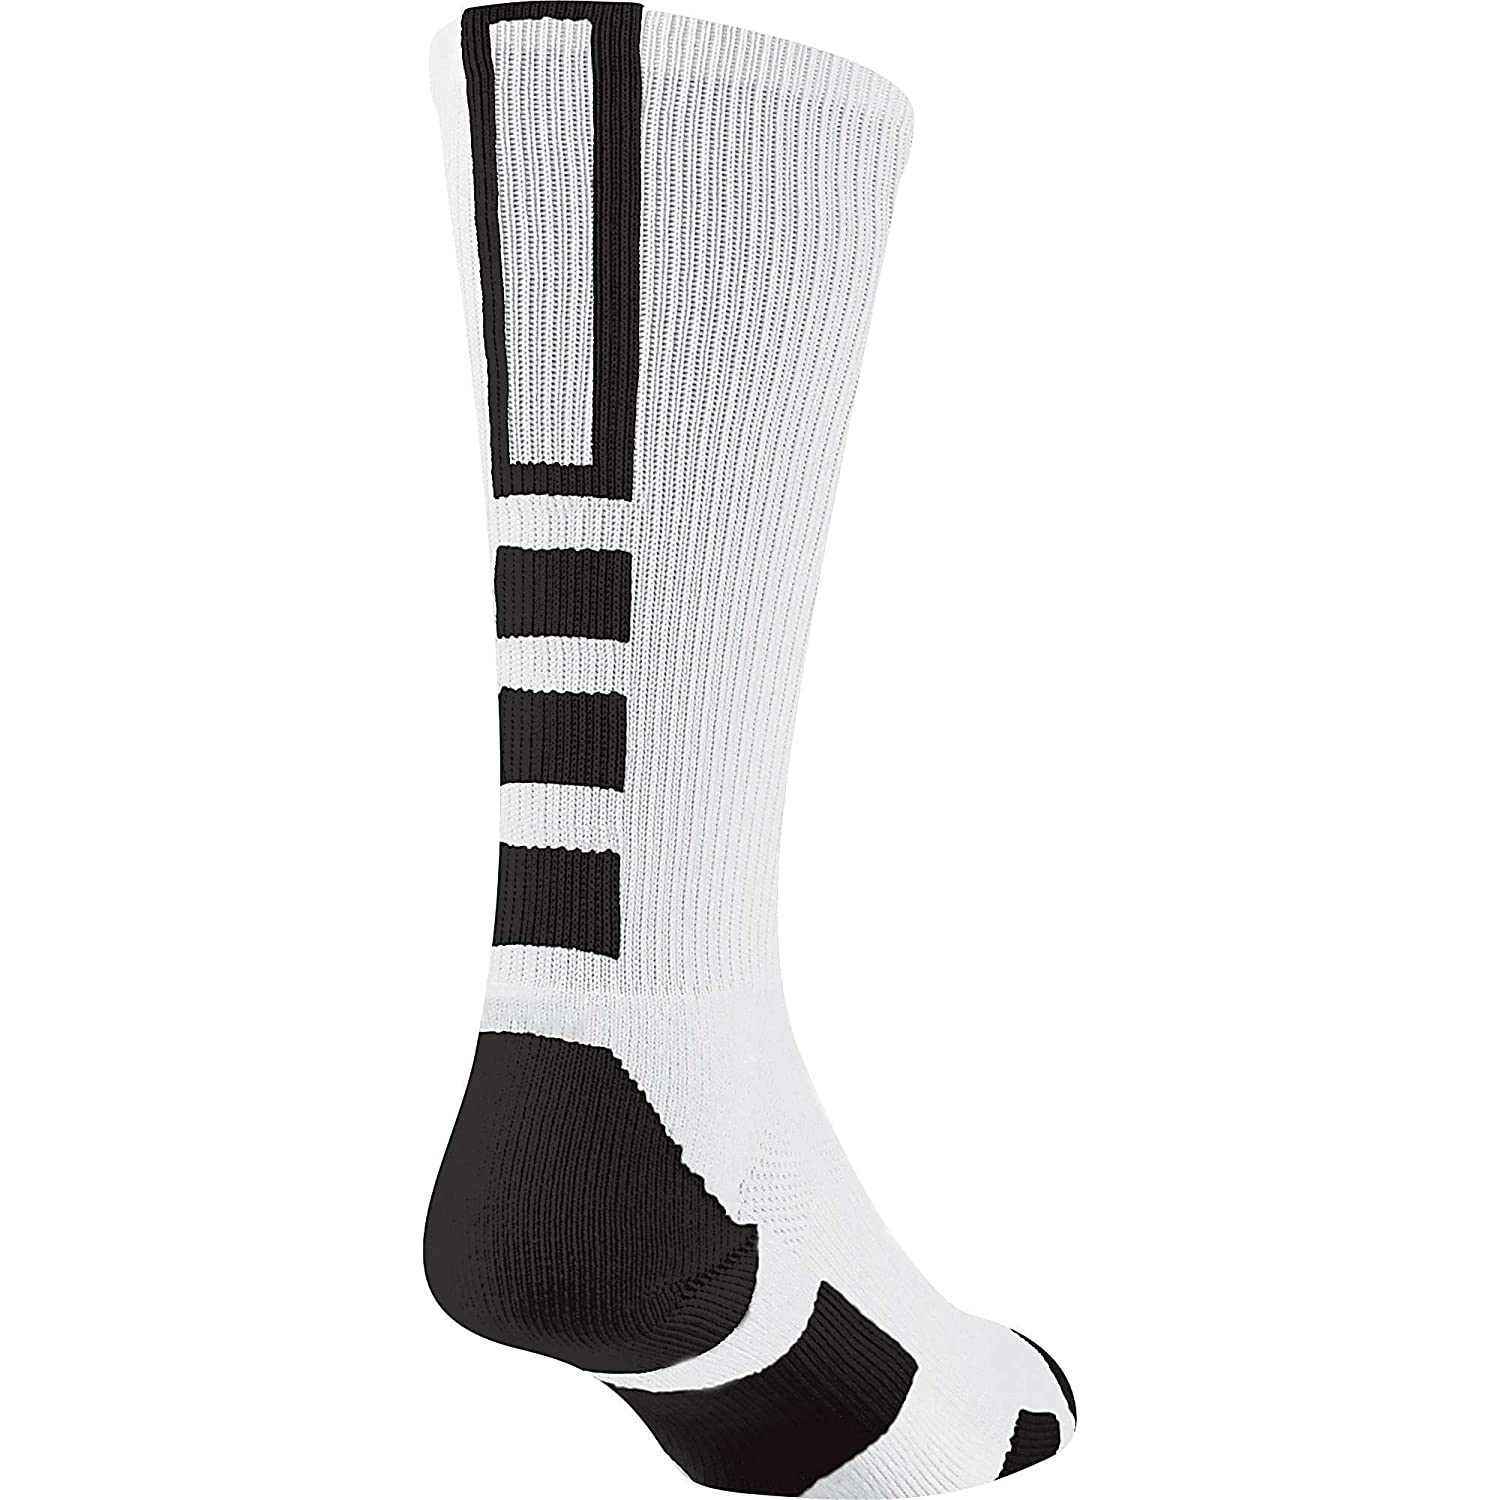 Baseline 2.0 Athletic Crew Socks (White/Black, Small) TCK Sports